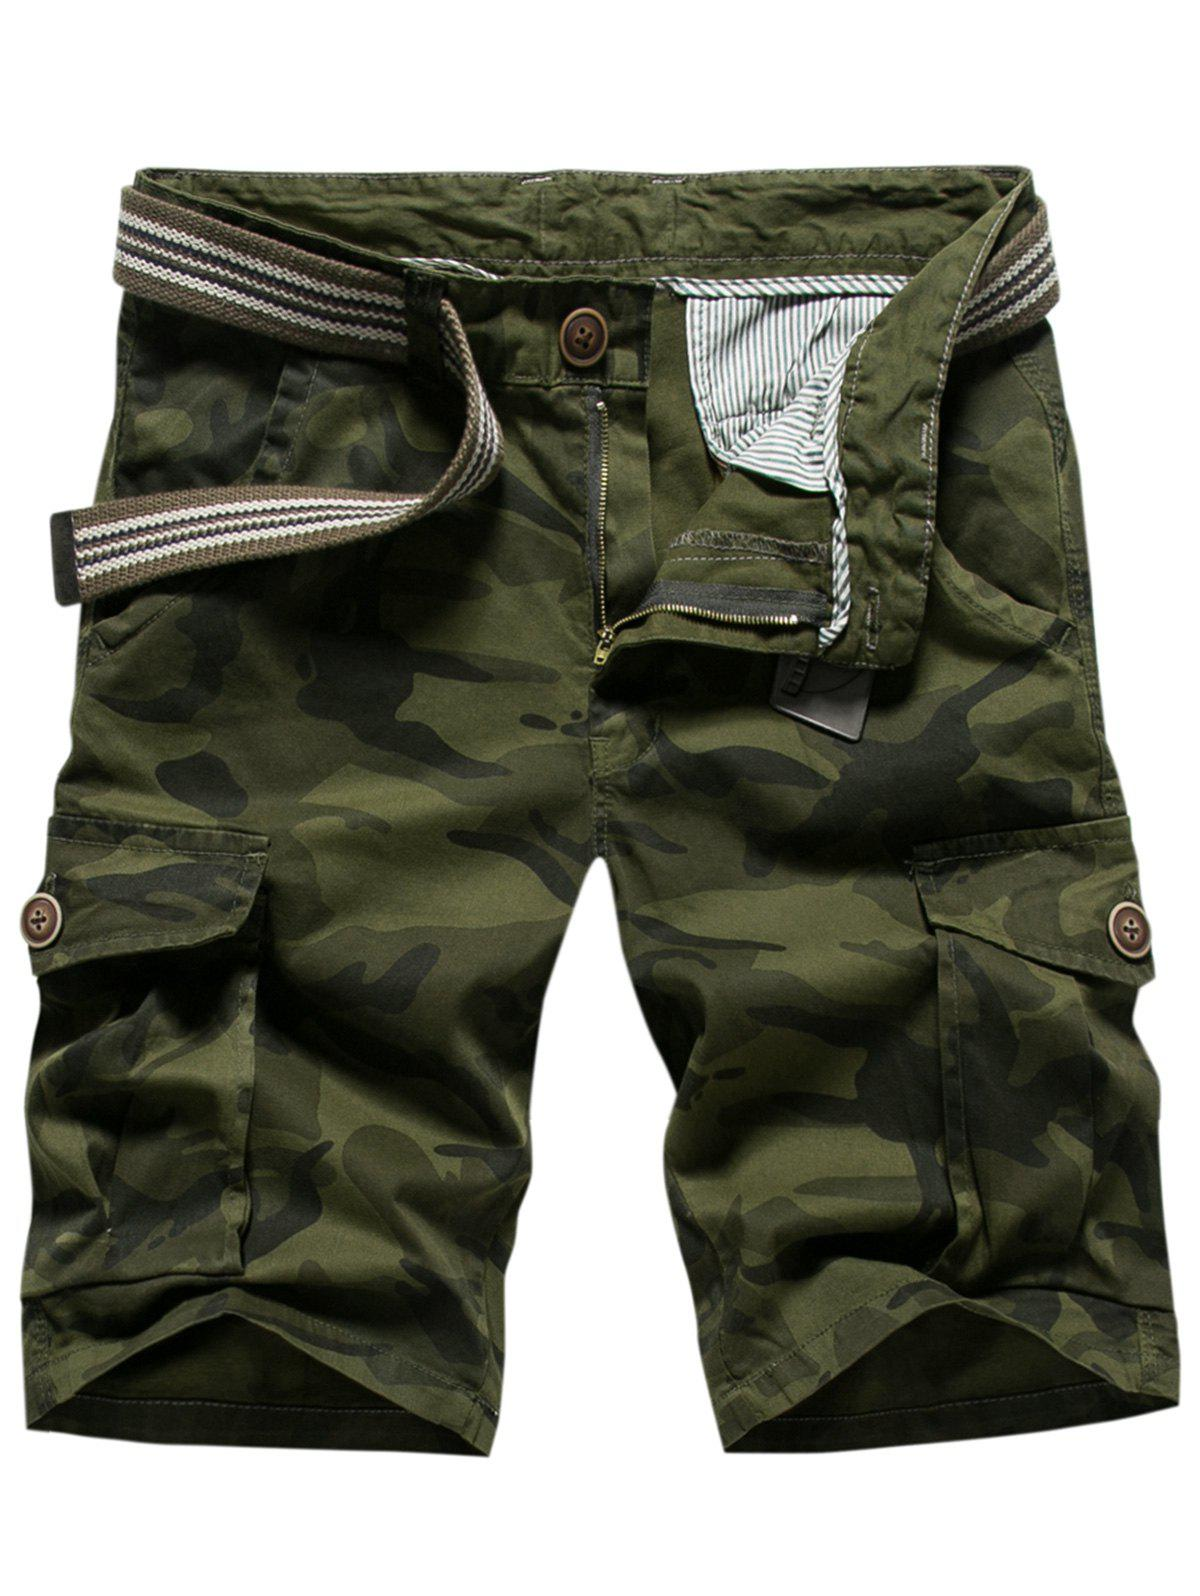 Shop Casual Multi-pocket Camo Shorts